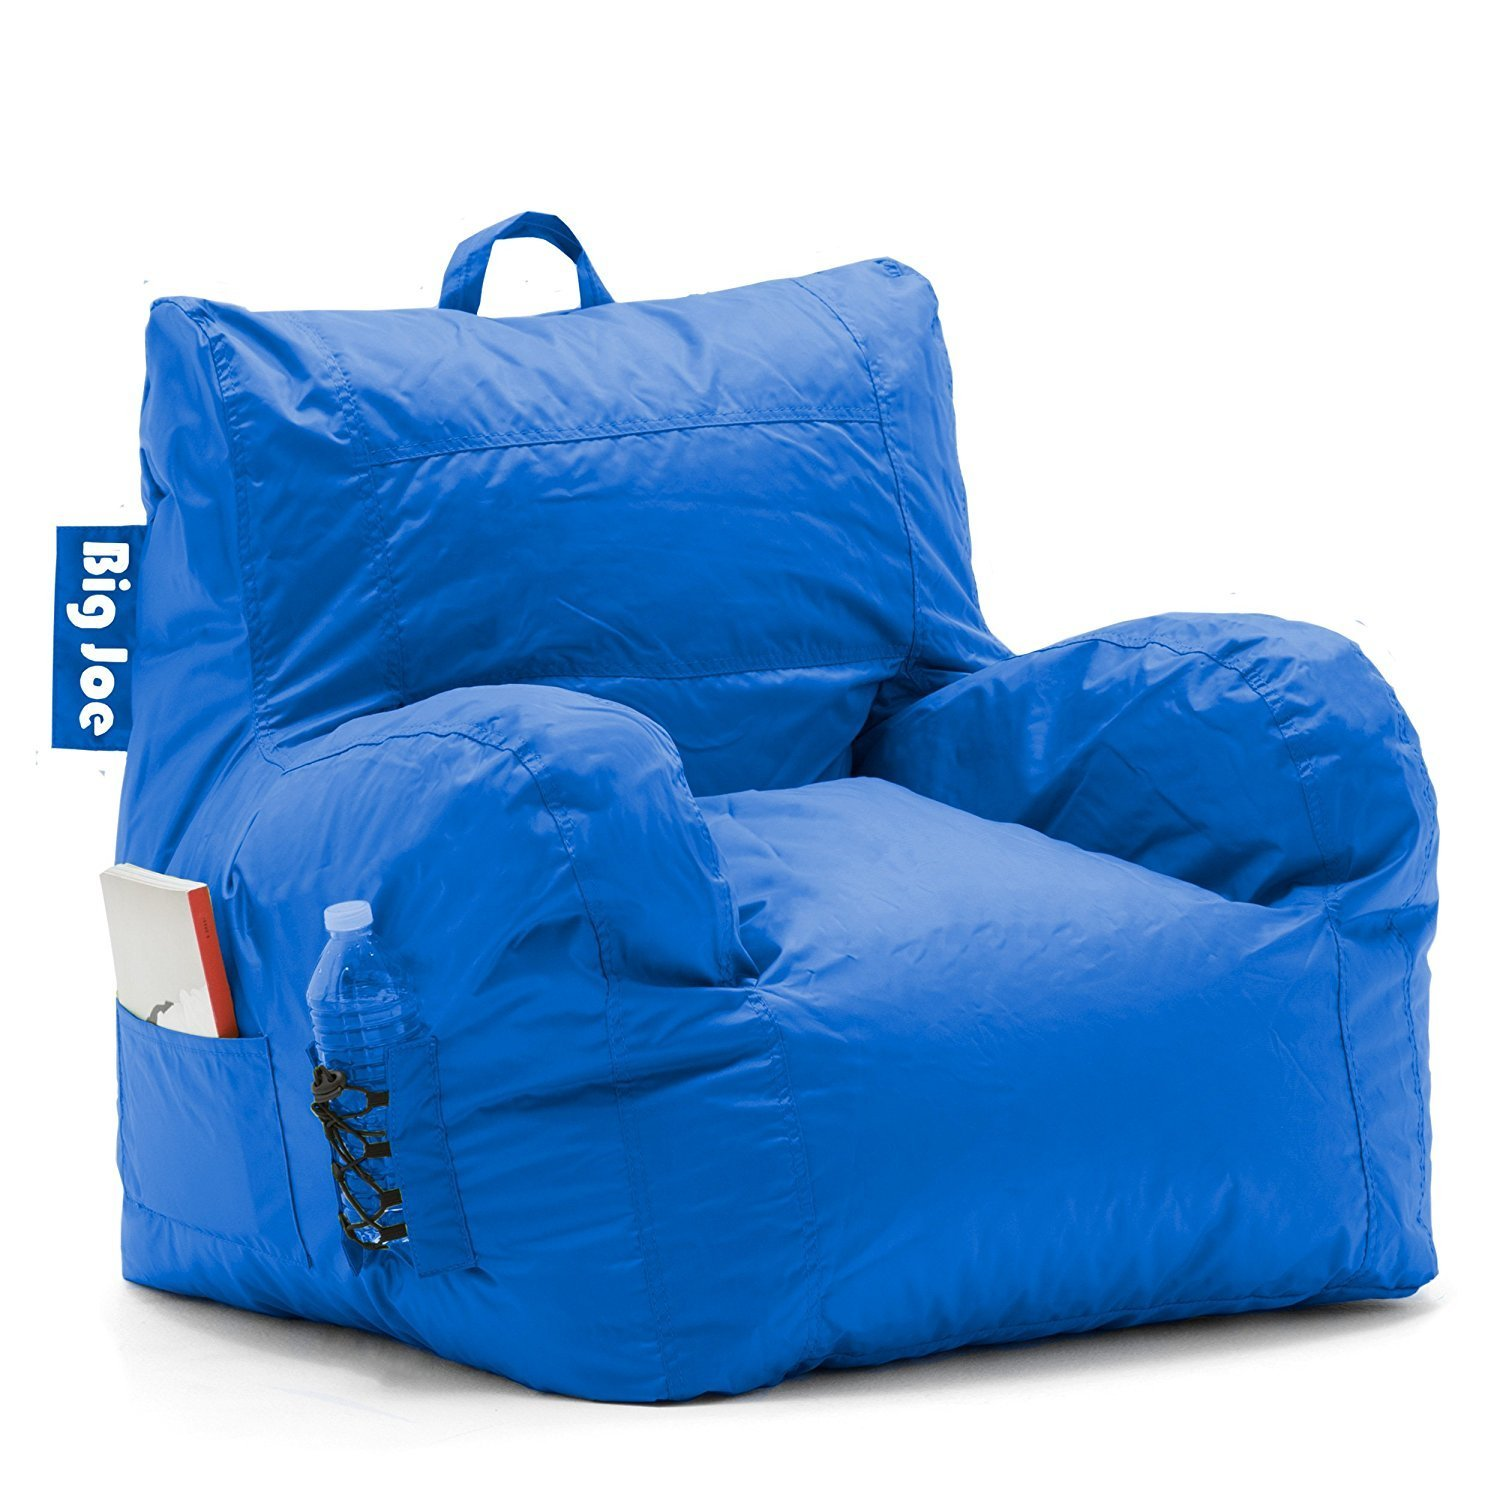 Big Joe Dorm Bean Bag Chair Home Furniture Design